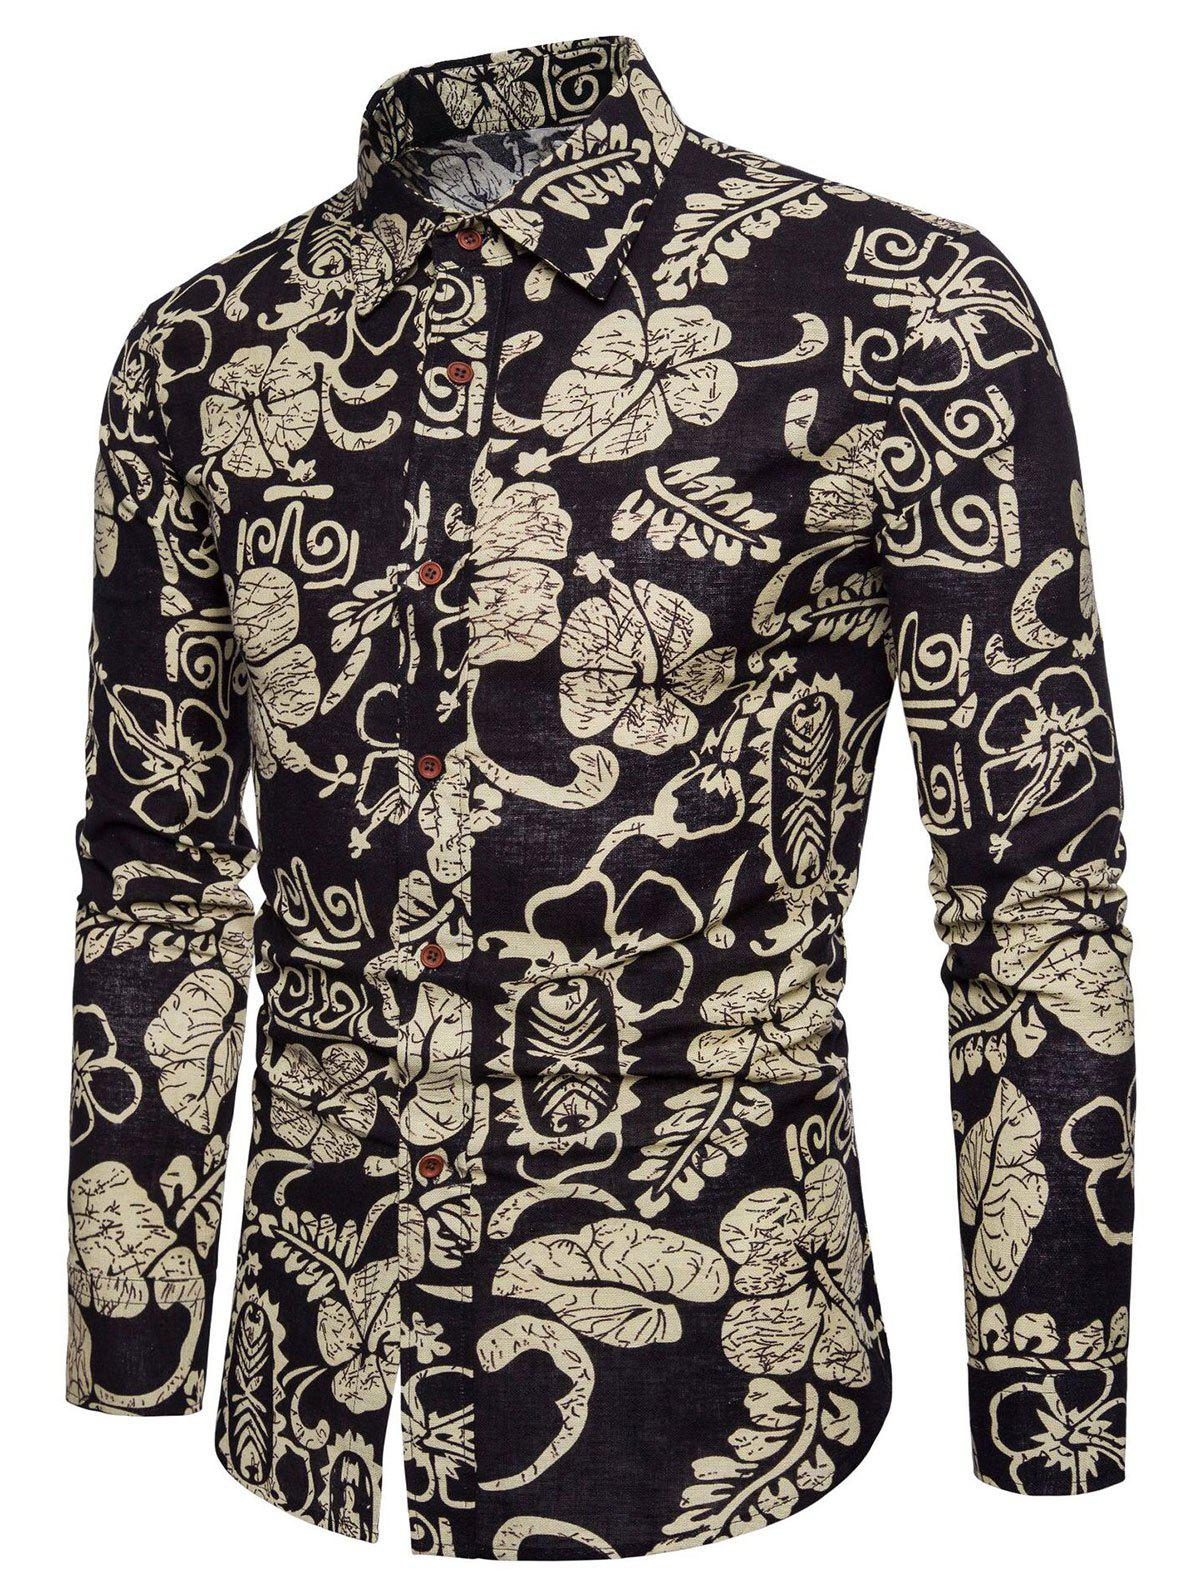 2018 ethnic floral print long sleeve button up shirt black for Floral print button up shirt